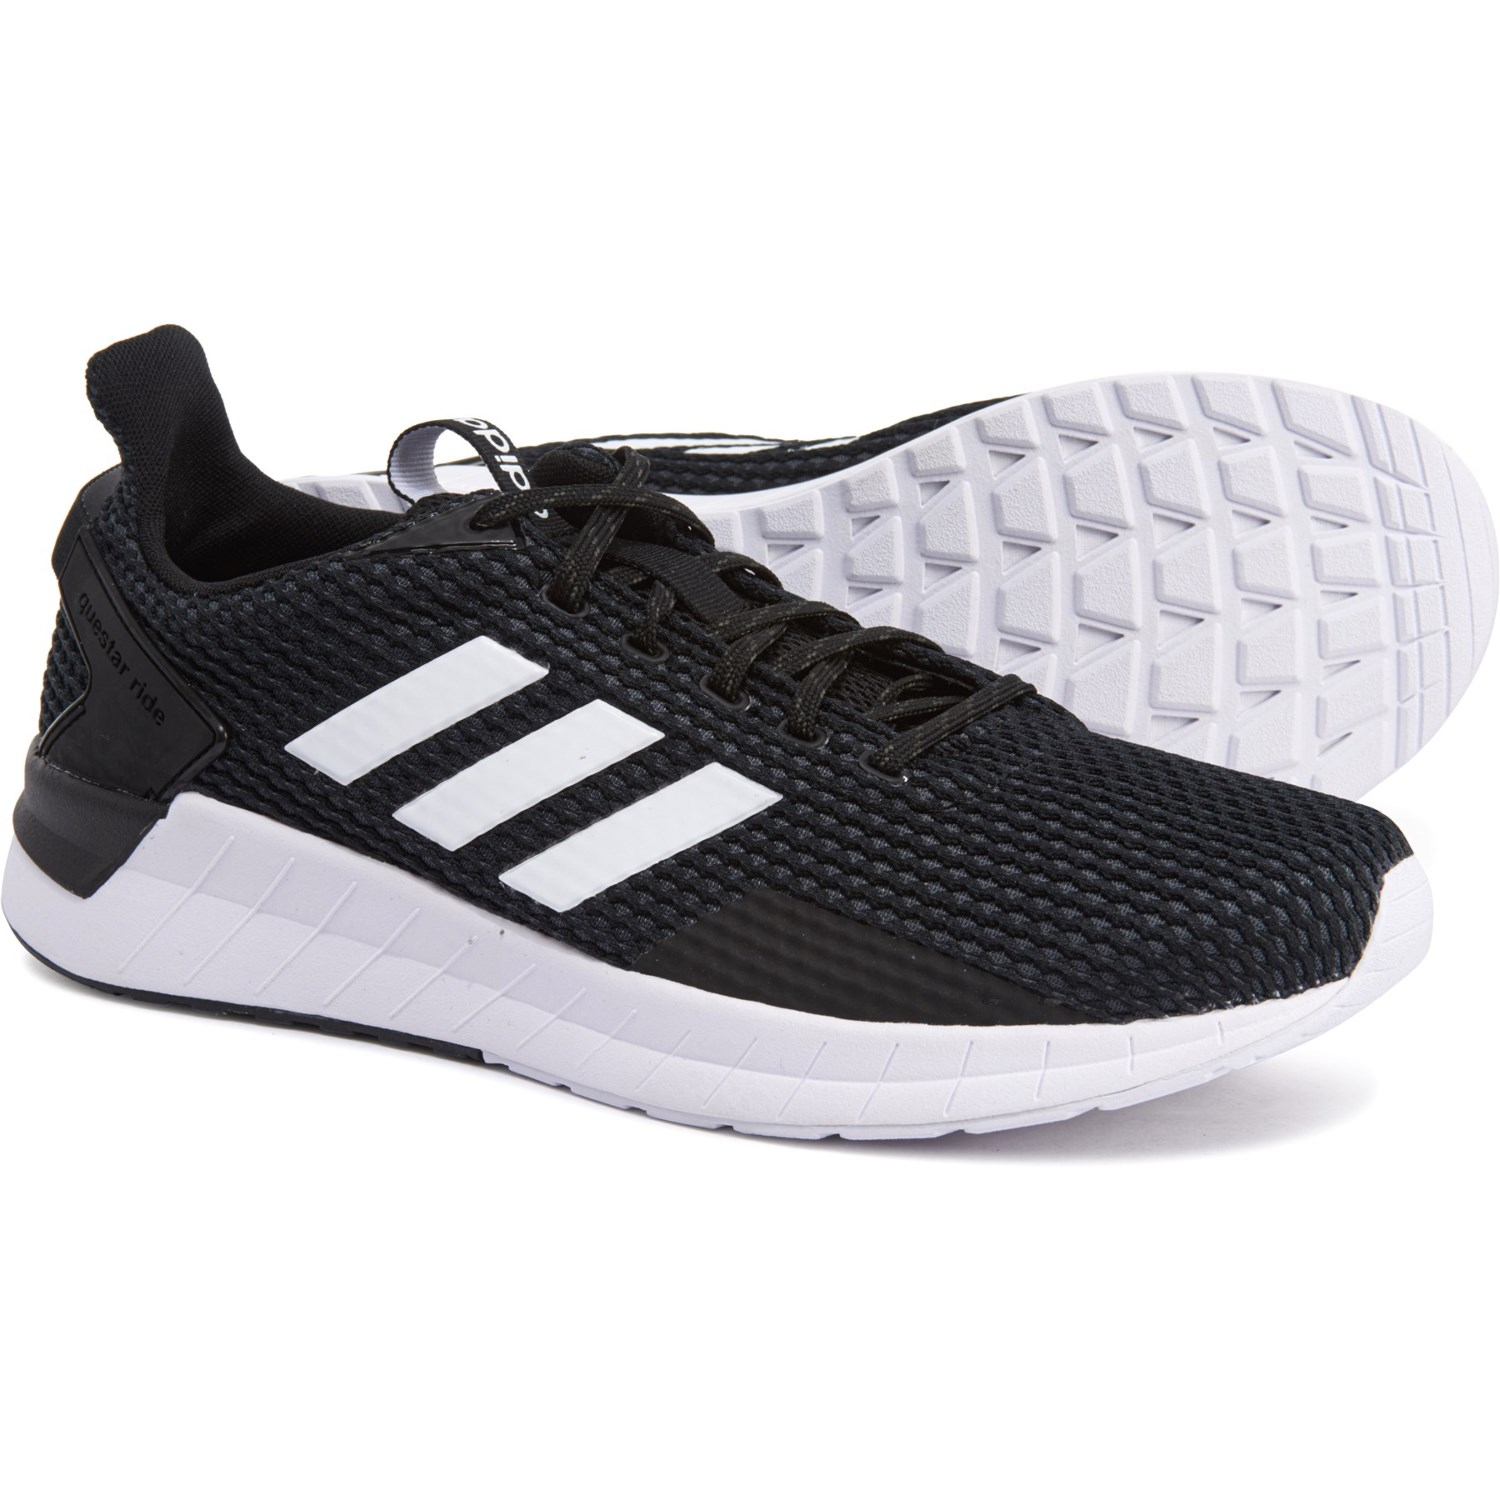 adidas Questar Ride Running Shoes (For Men) Save 16%